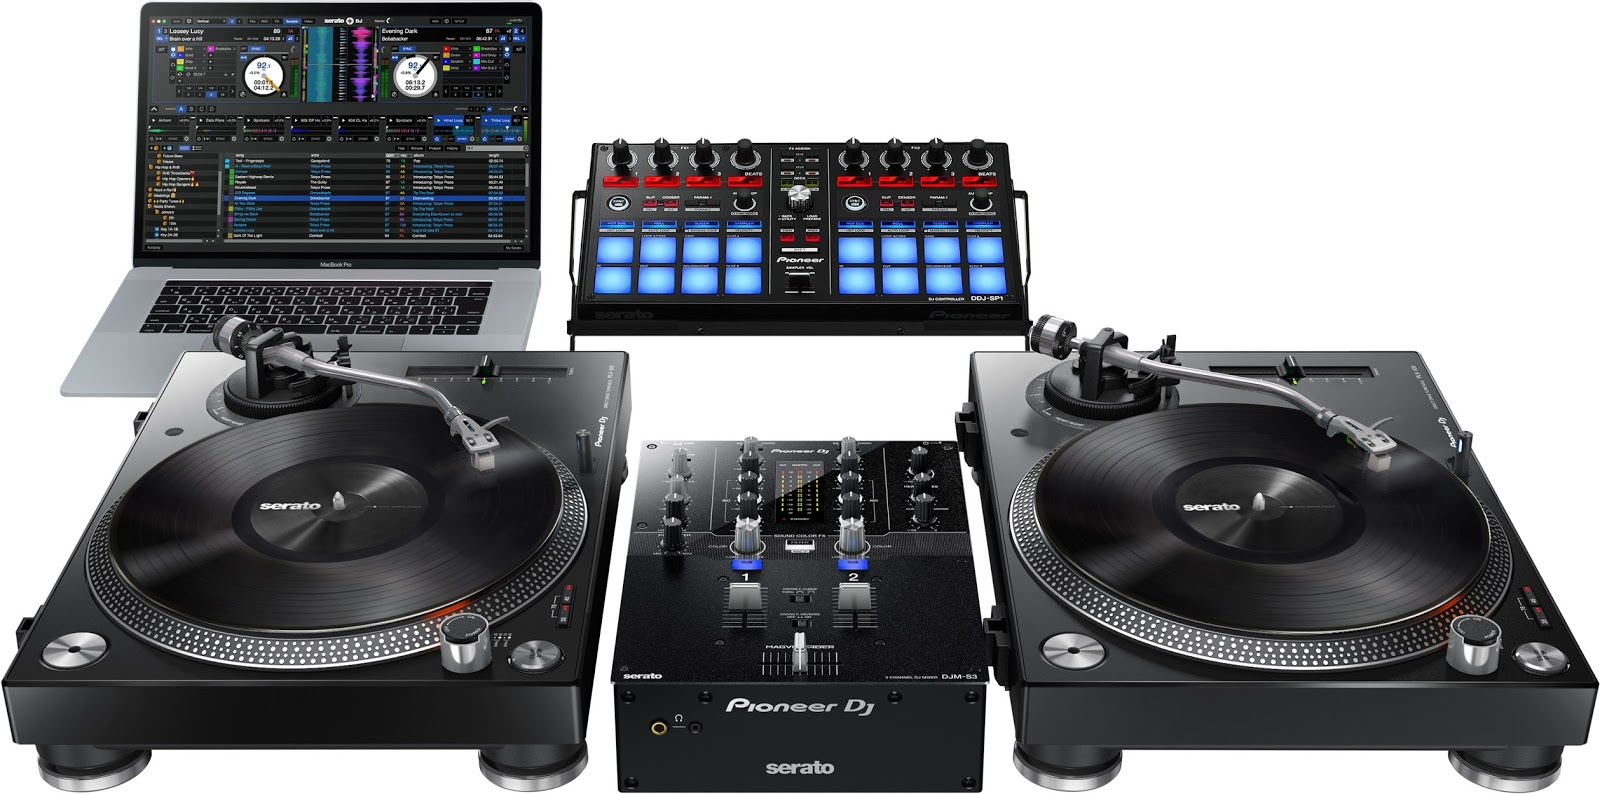 official malaysia leading dj musician producer dj equipment machine vinyl records store showroom. Black Bedroom Furniture Sets. Home Design Ideas